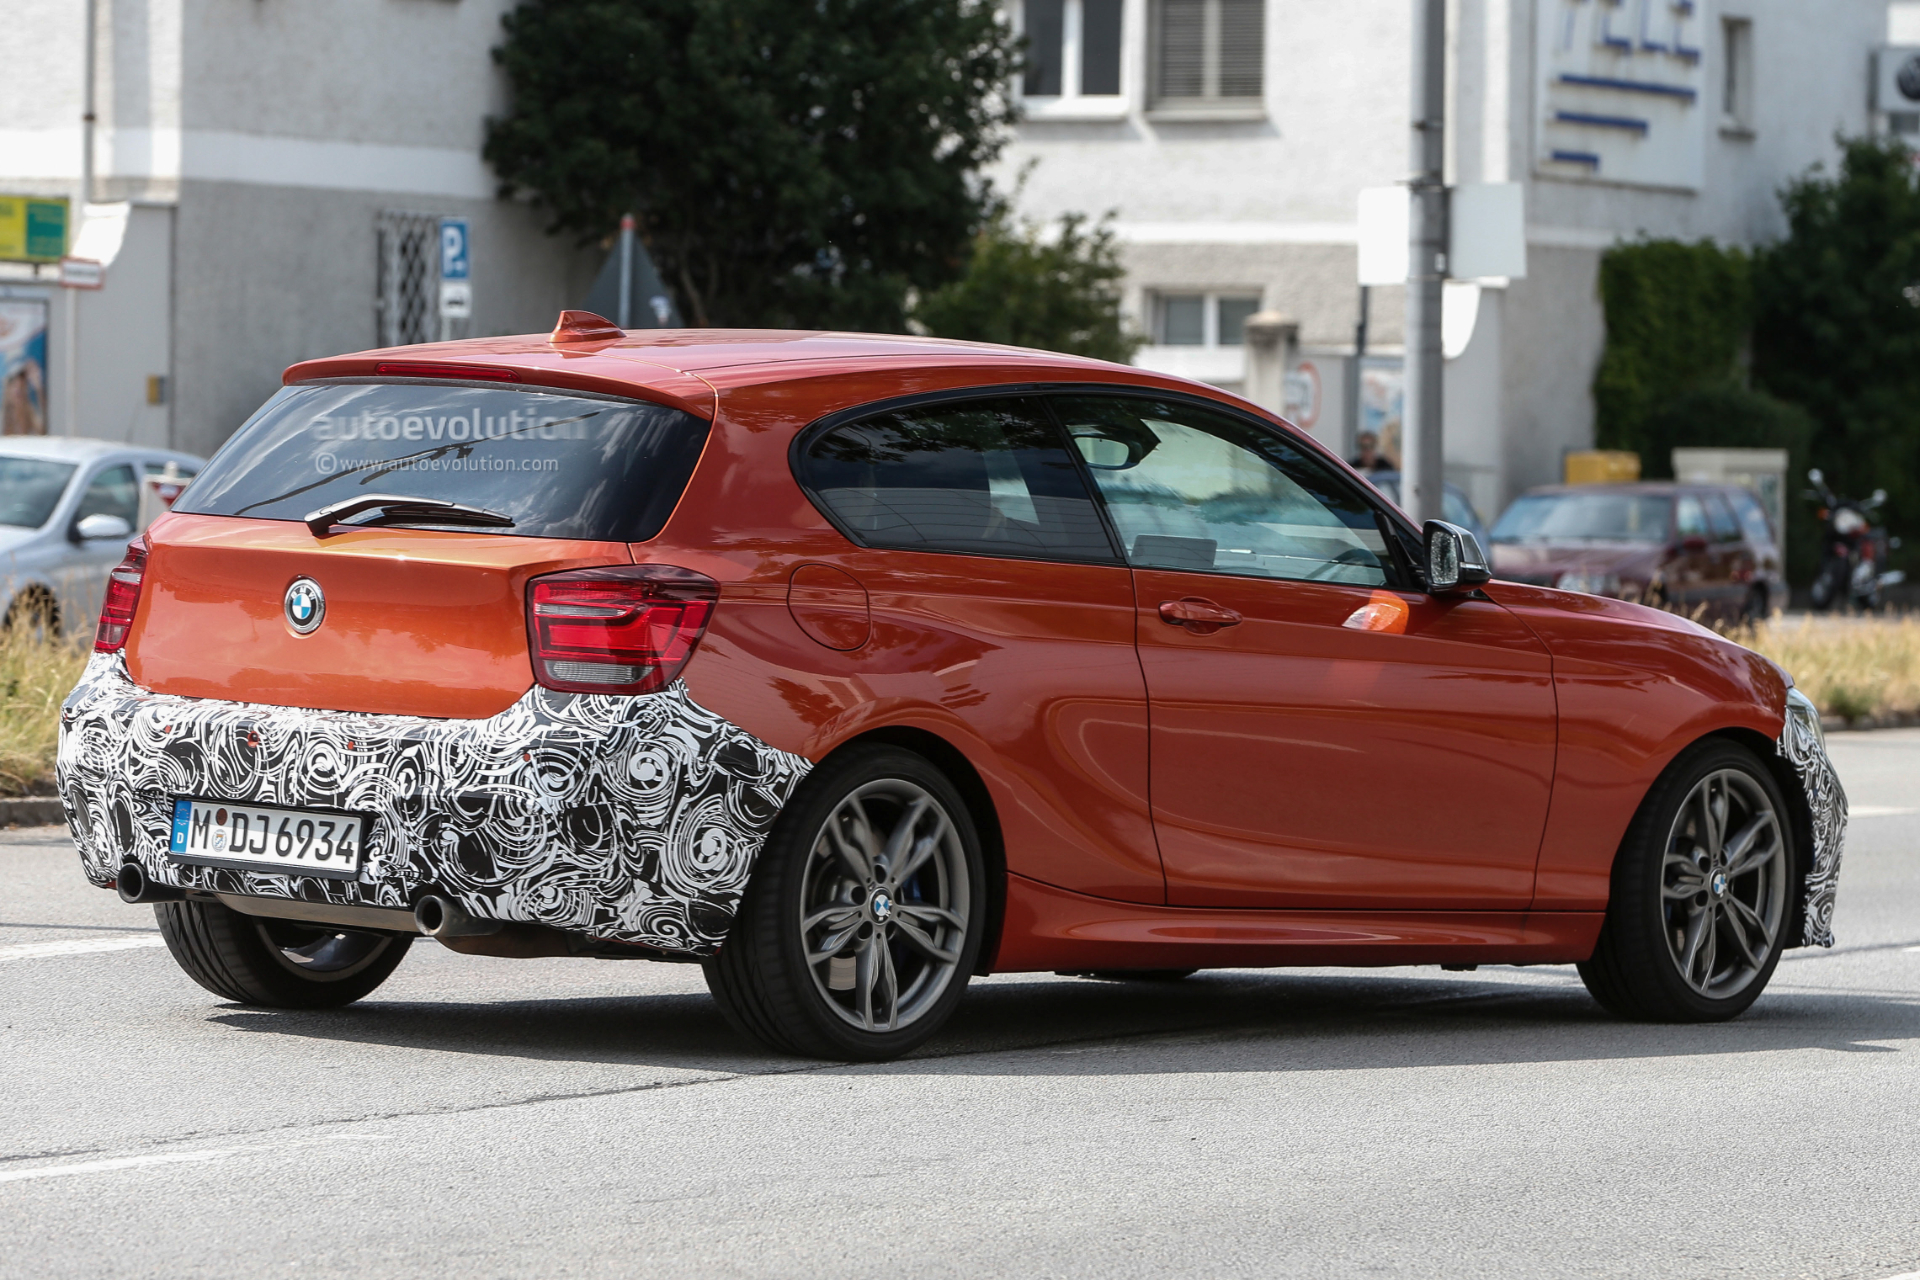 2015 - [BMW] Série 1 restylée [F20/21] - Page 7 Bmw-1-series-facelift-rolls-into-view_4